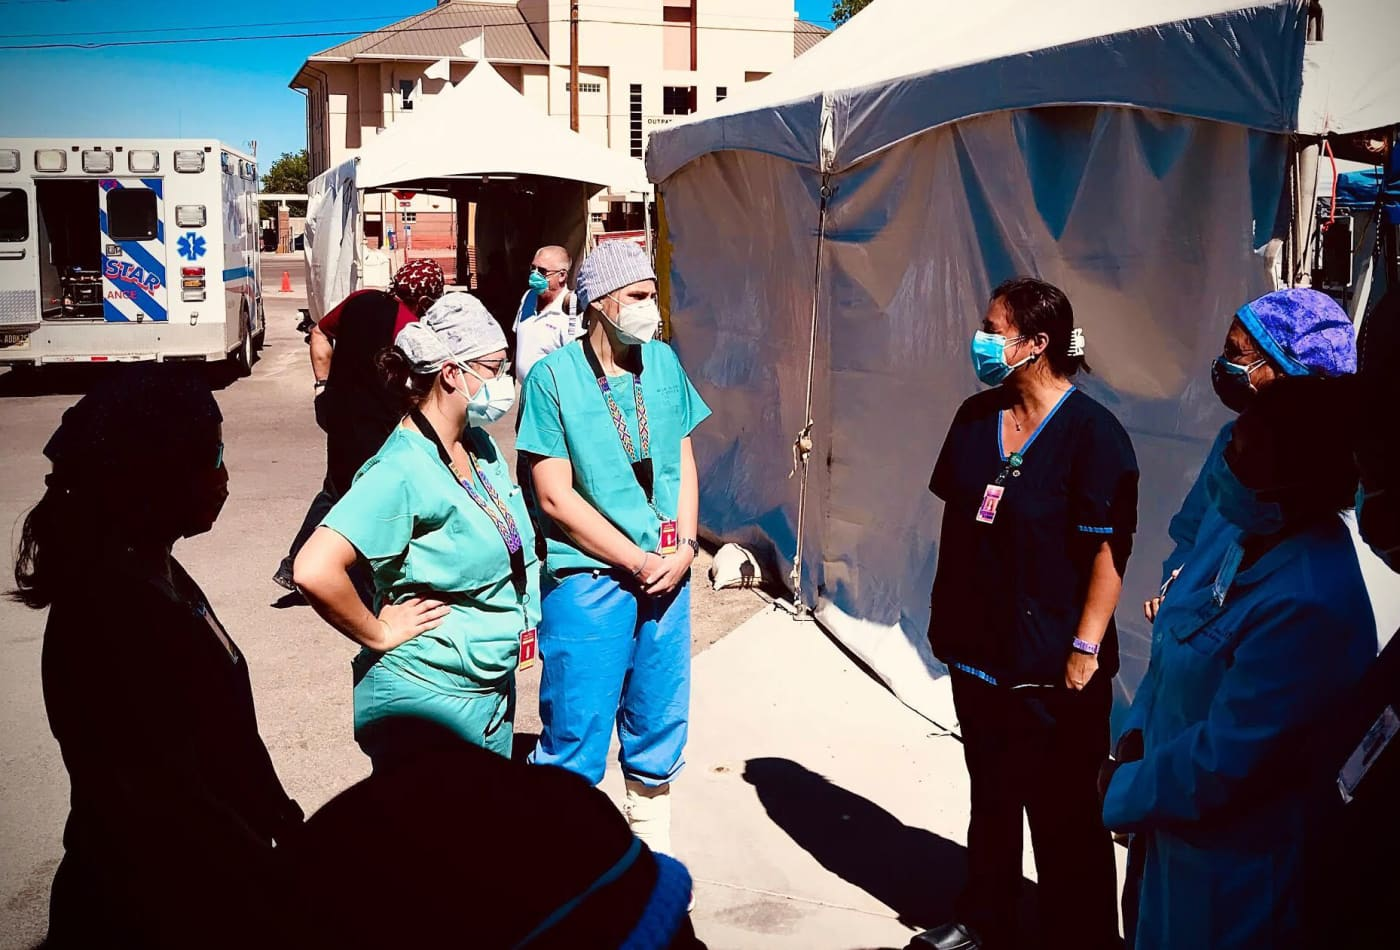 These doctors and nurses volunteered to battle Covid-19 in the Navajo Nation, and came back with a warning